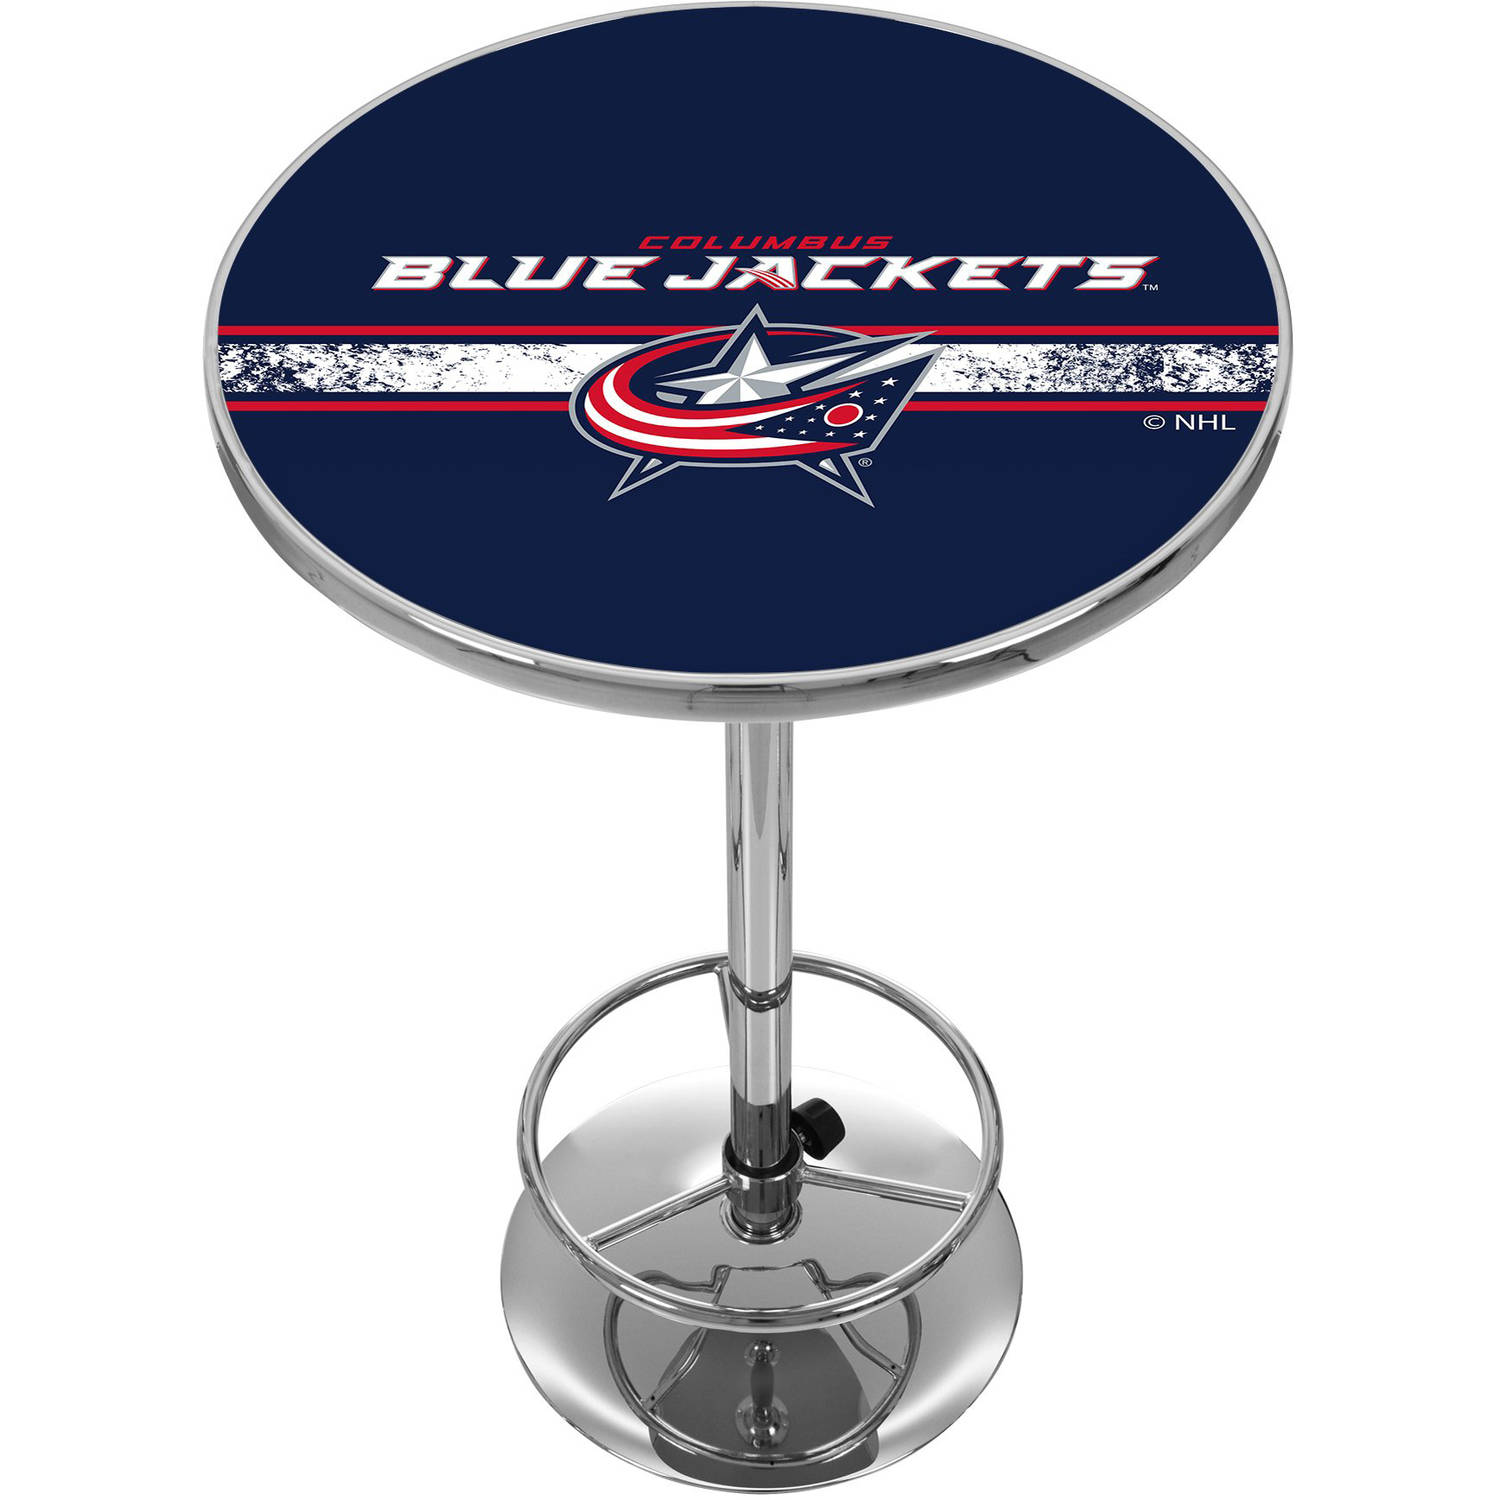 NHL Chrome Pub Table, Columbus Blue Jackets